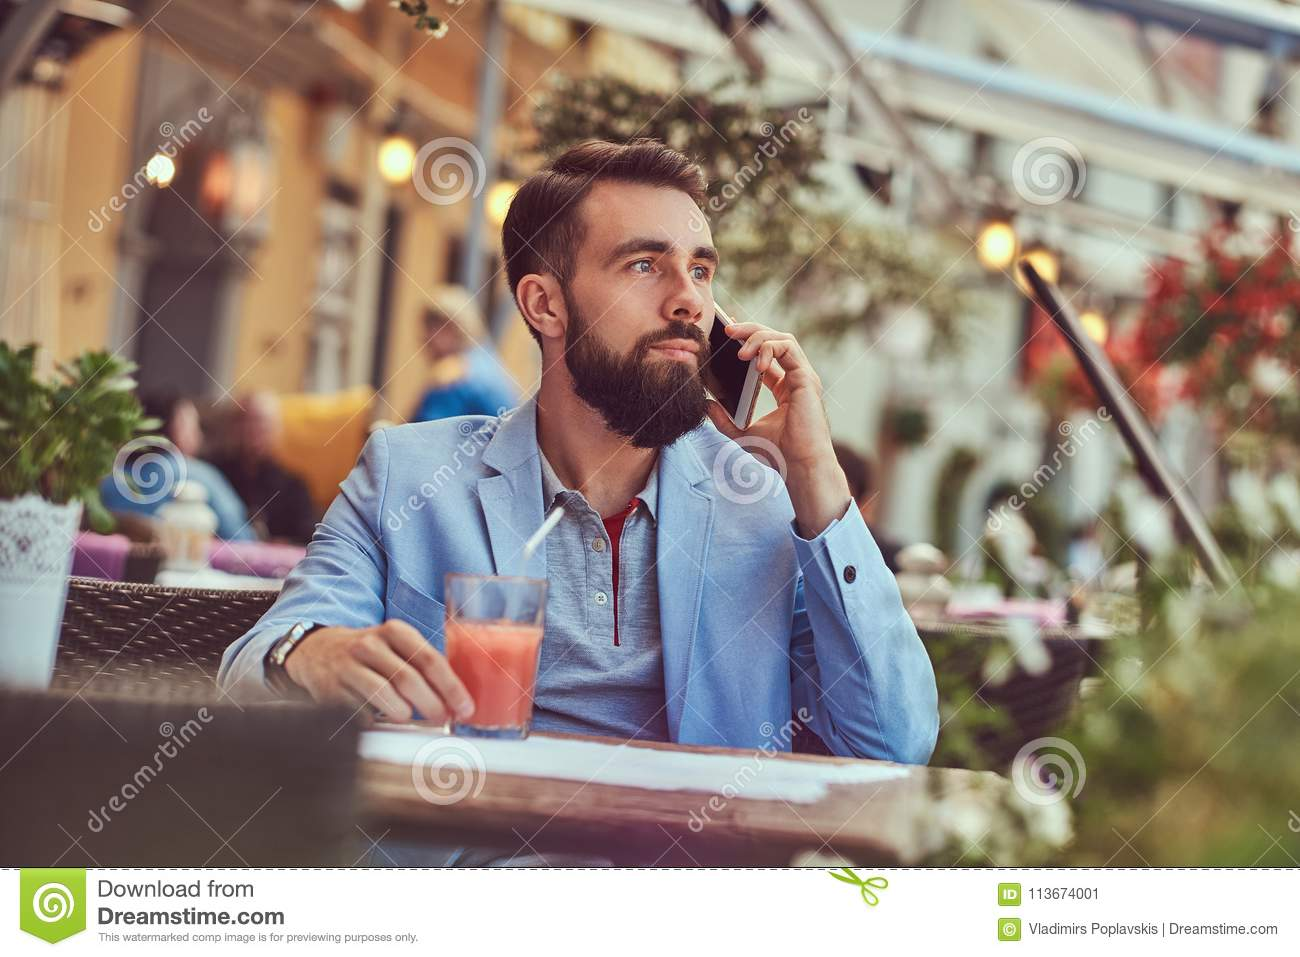 Portrait Of A Fashionable Bearded Businessman With A Stylish Haircut